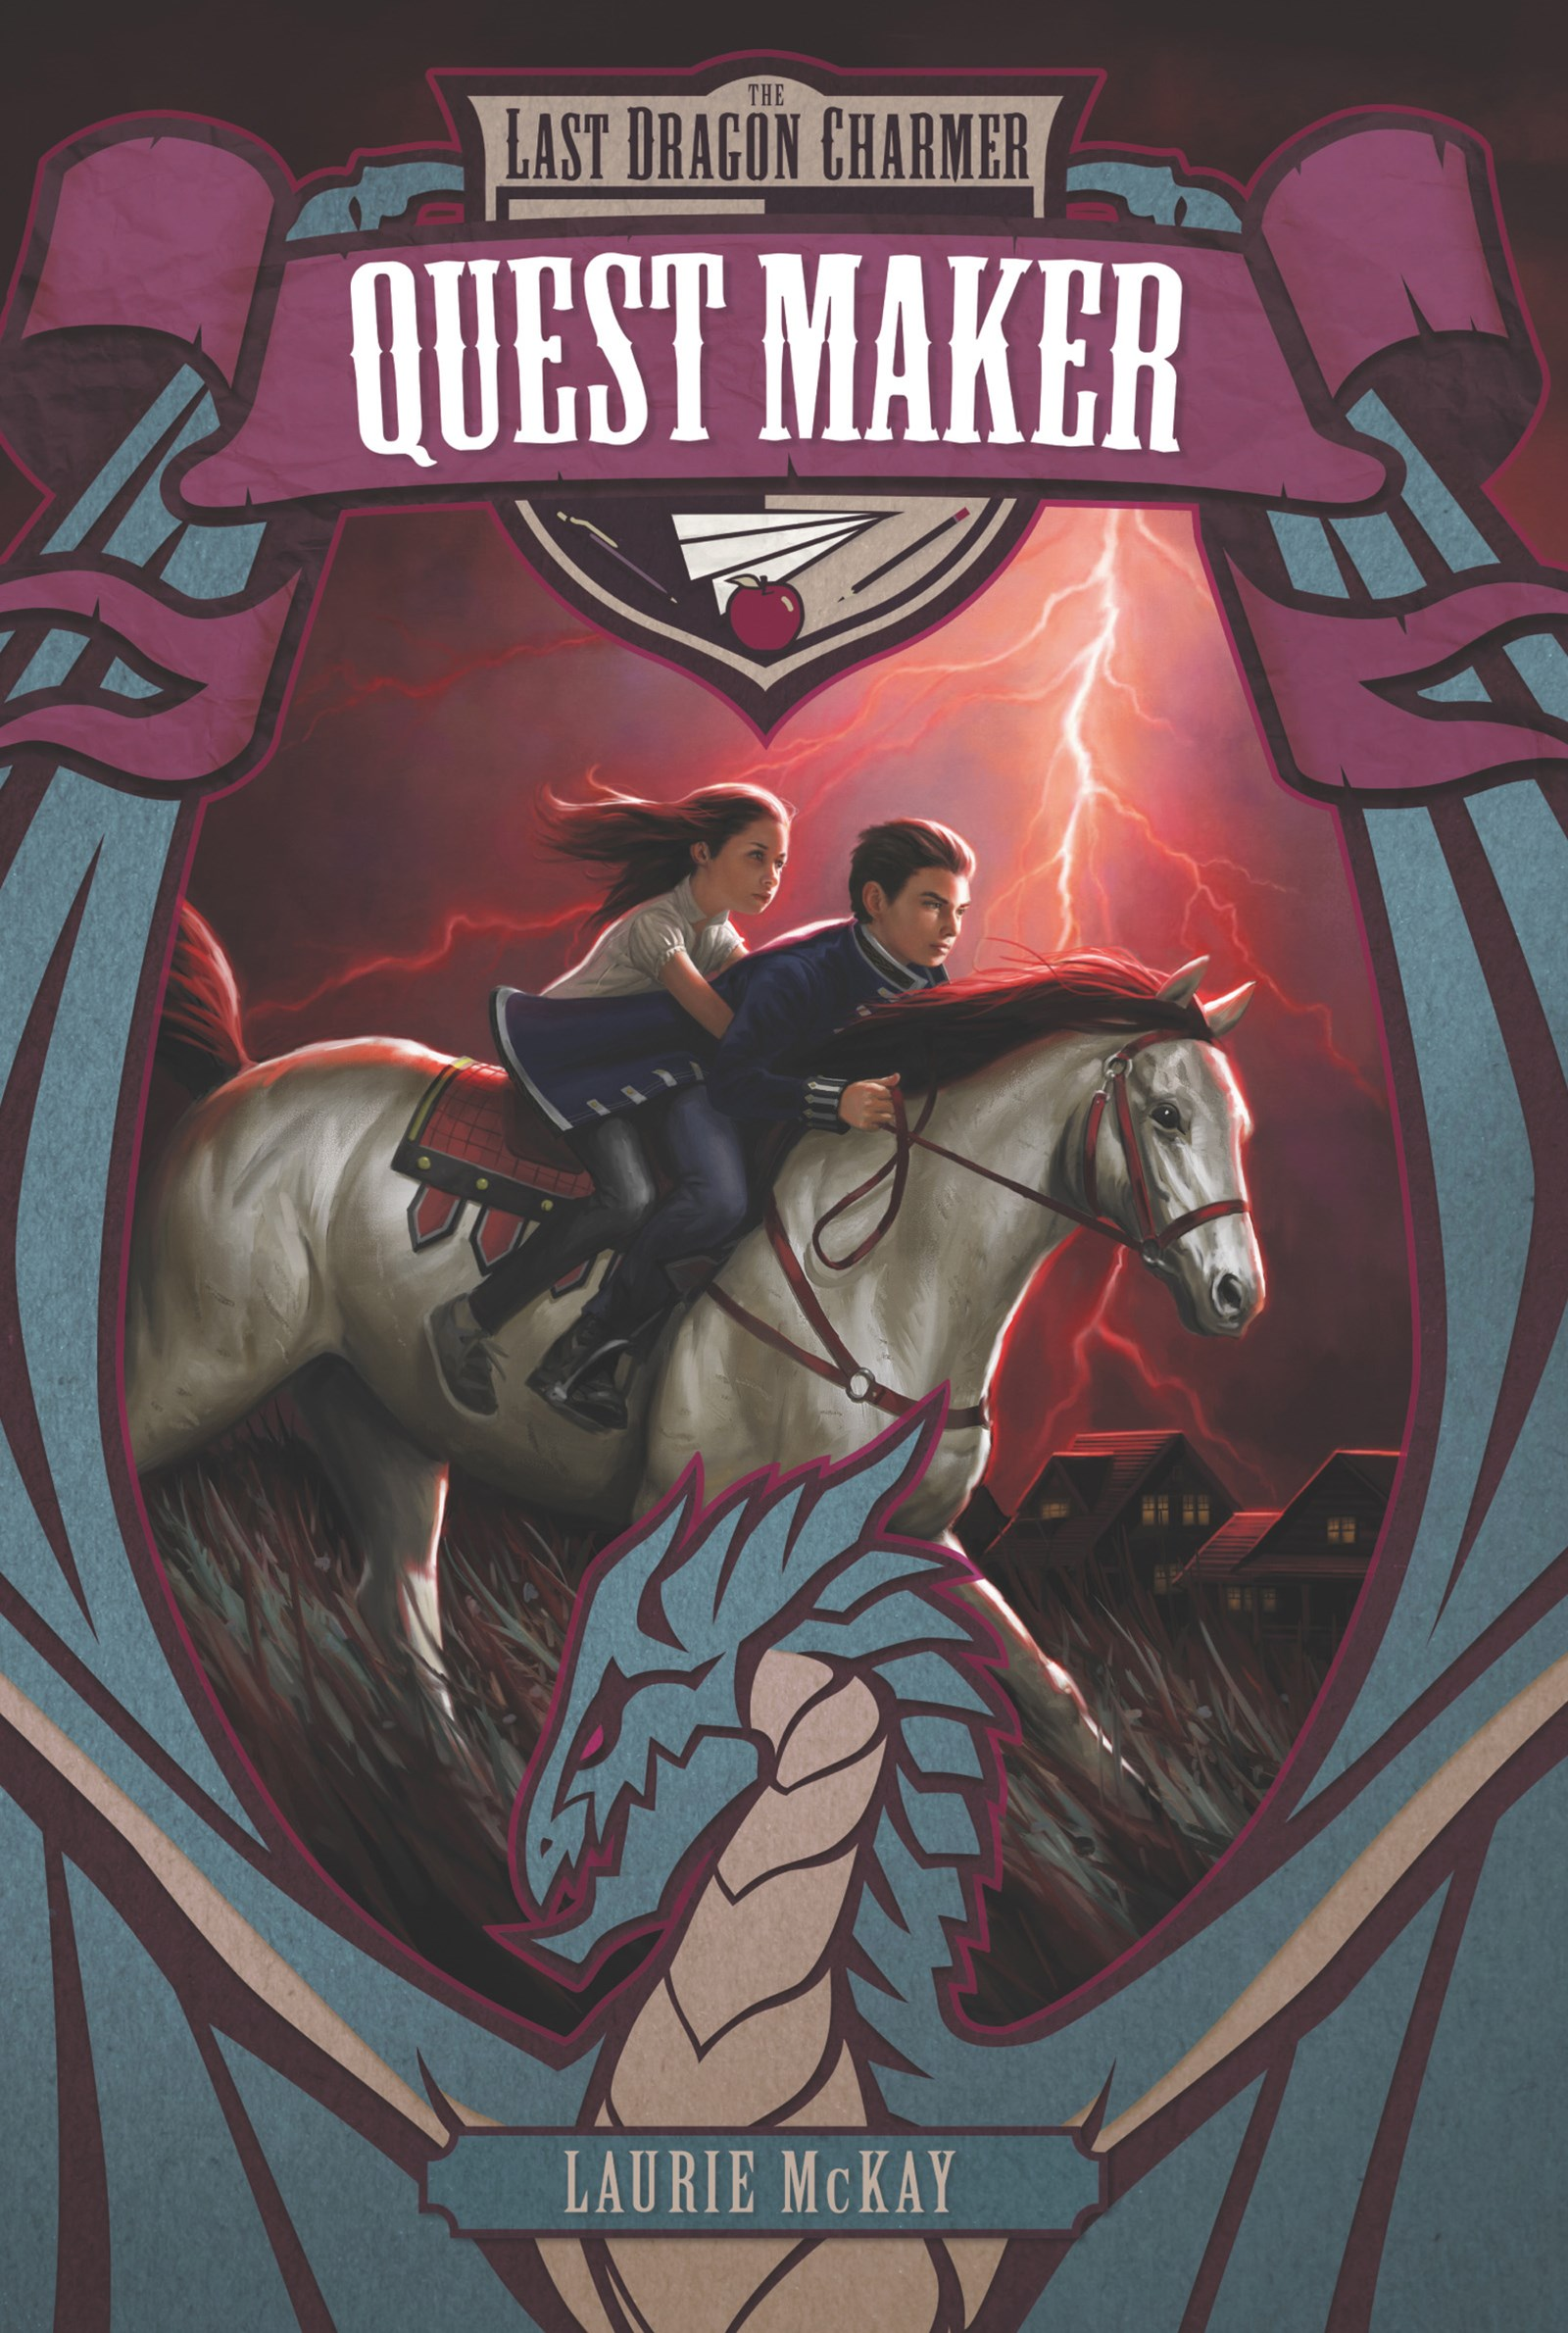 Last Dragon Charmer #2: The Quest Maker